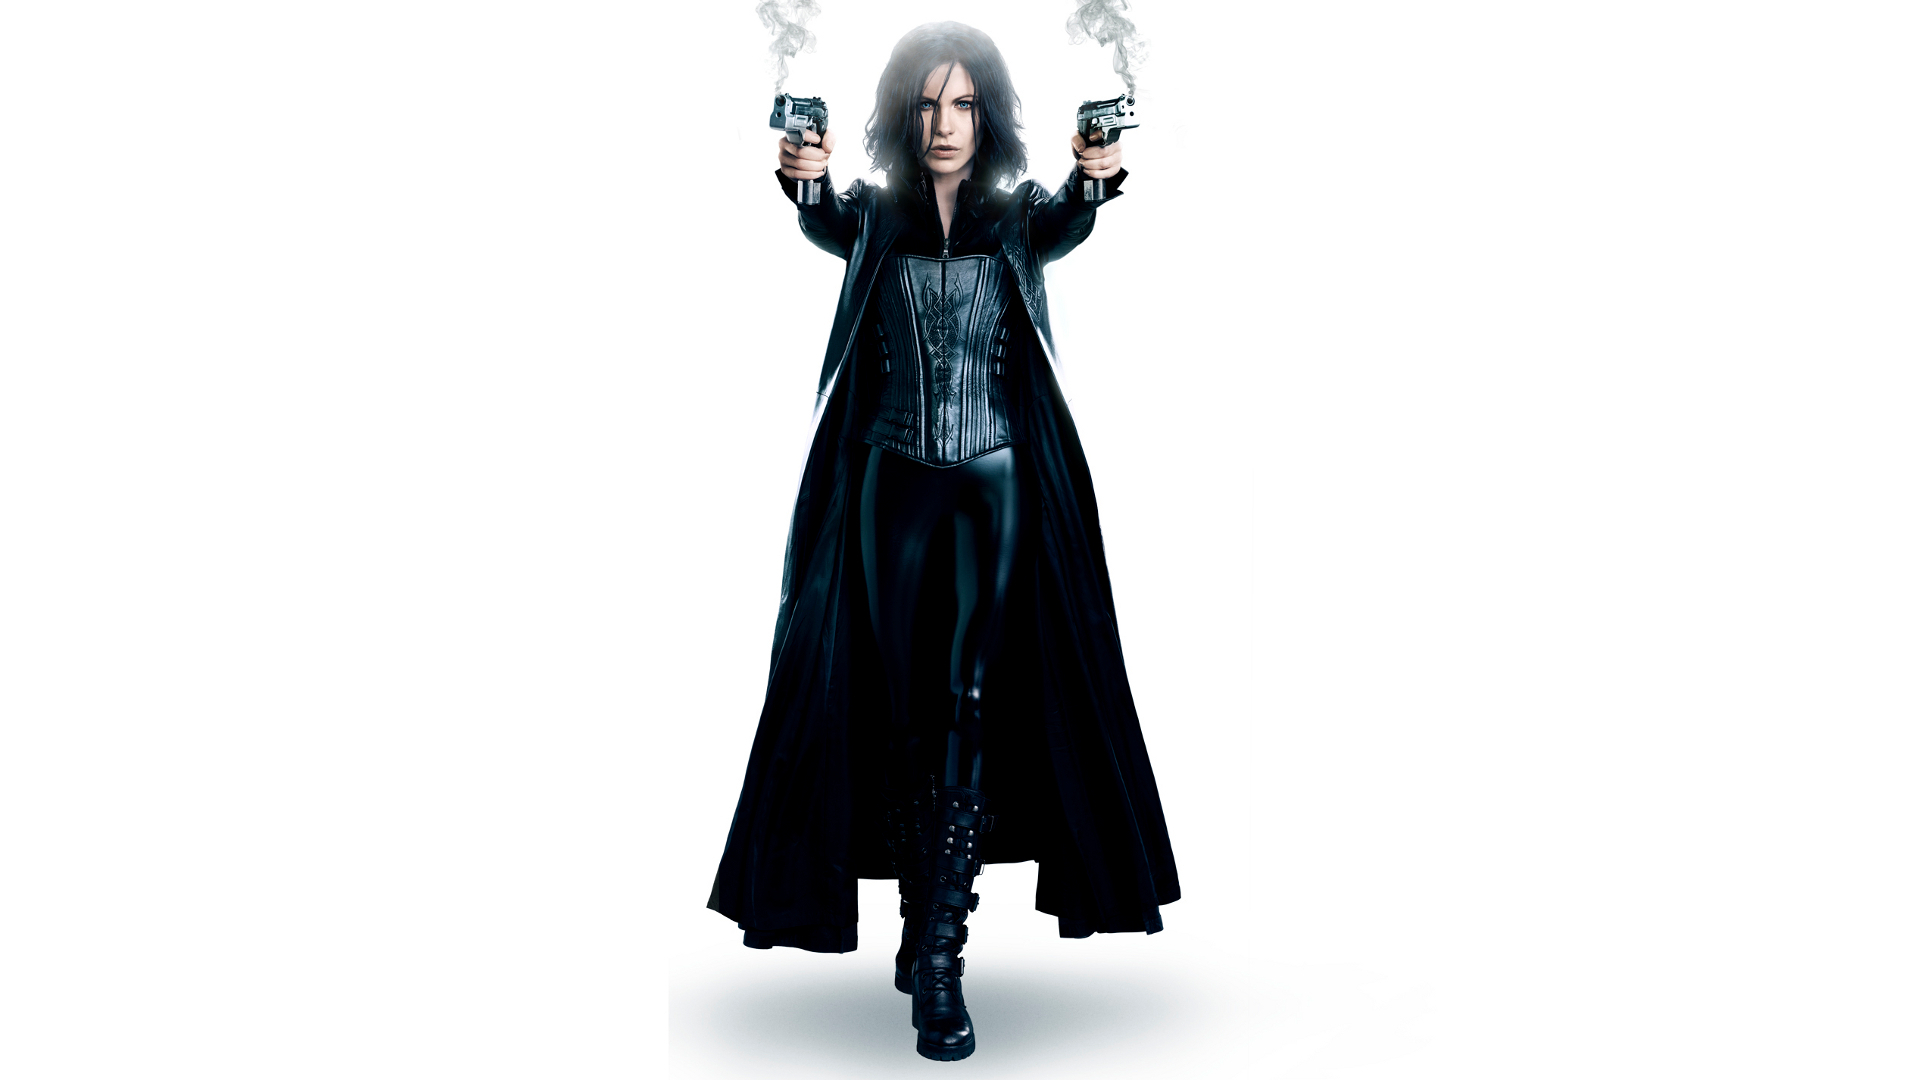 Kate Beckinsale in Underworld 1115.6 Kb